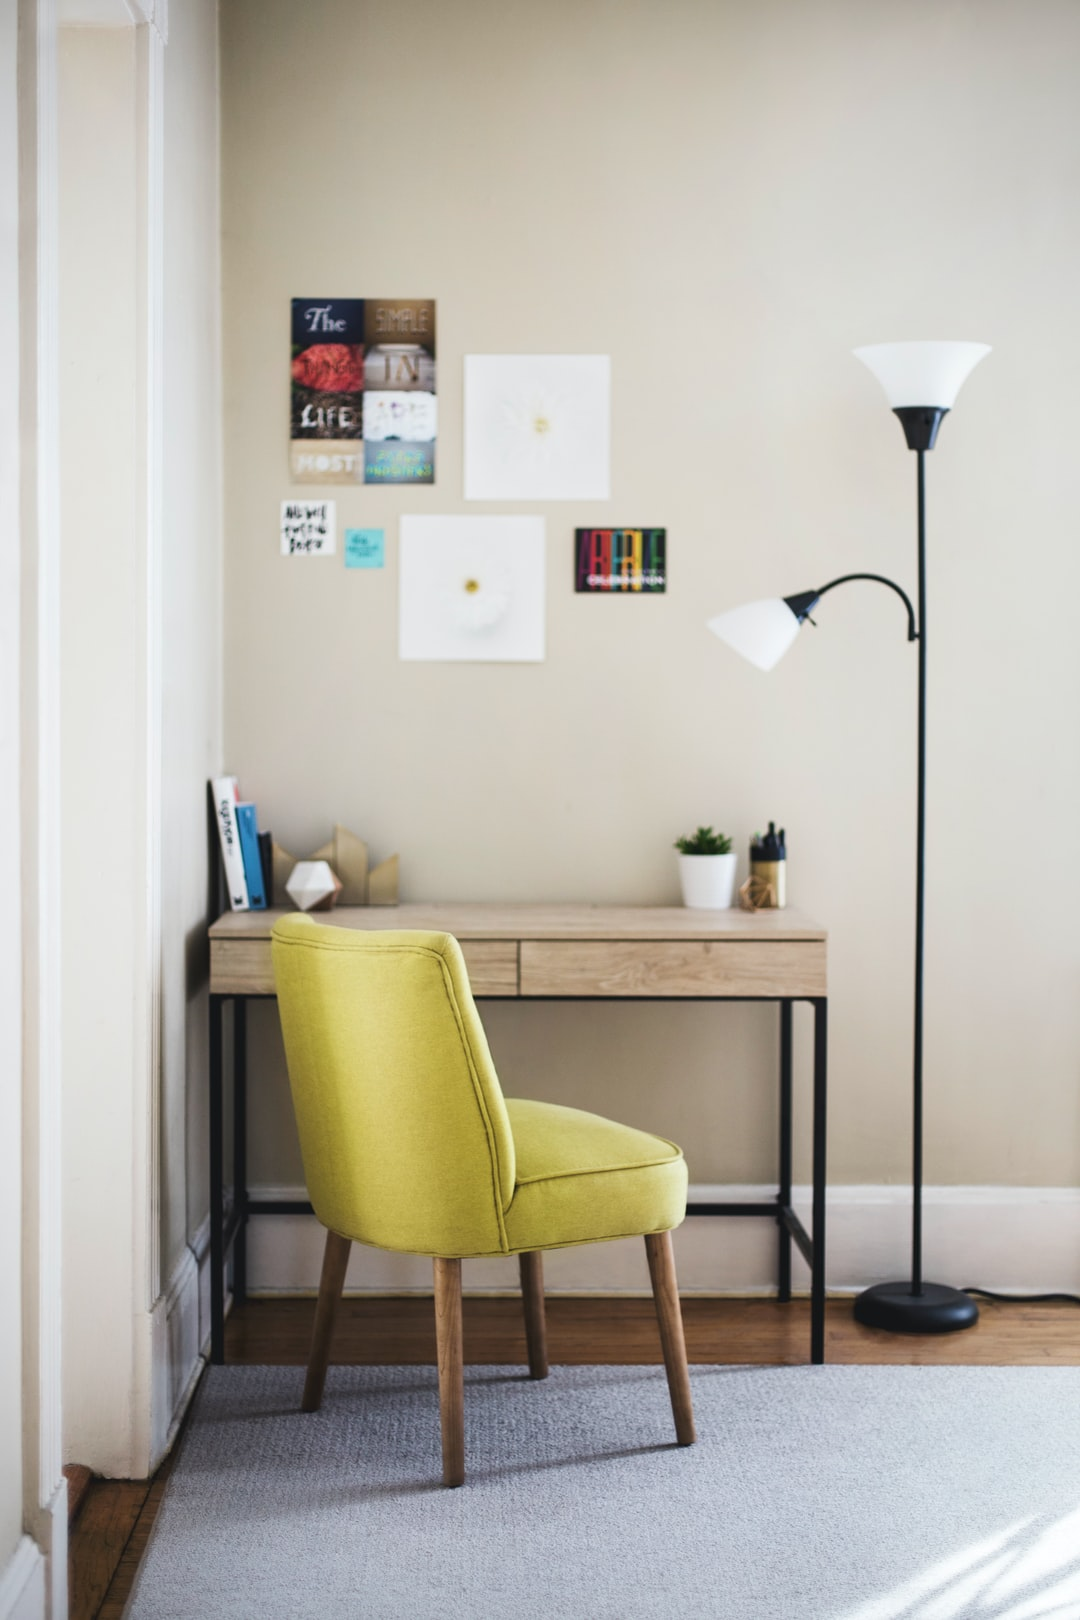 As a creative, I work best when my space is filled with inspiration. From the furniture, to the art on my walls, to the books on my desk, and even the lighting in the room.